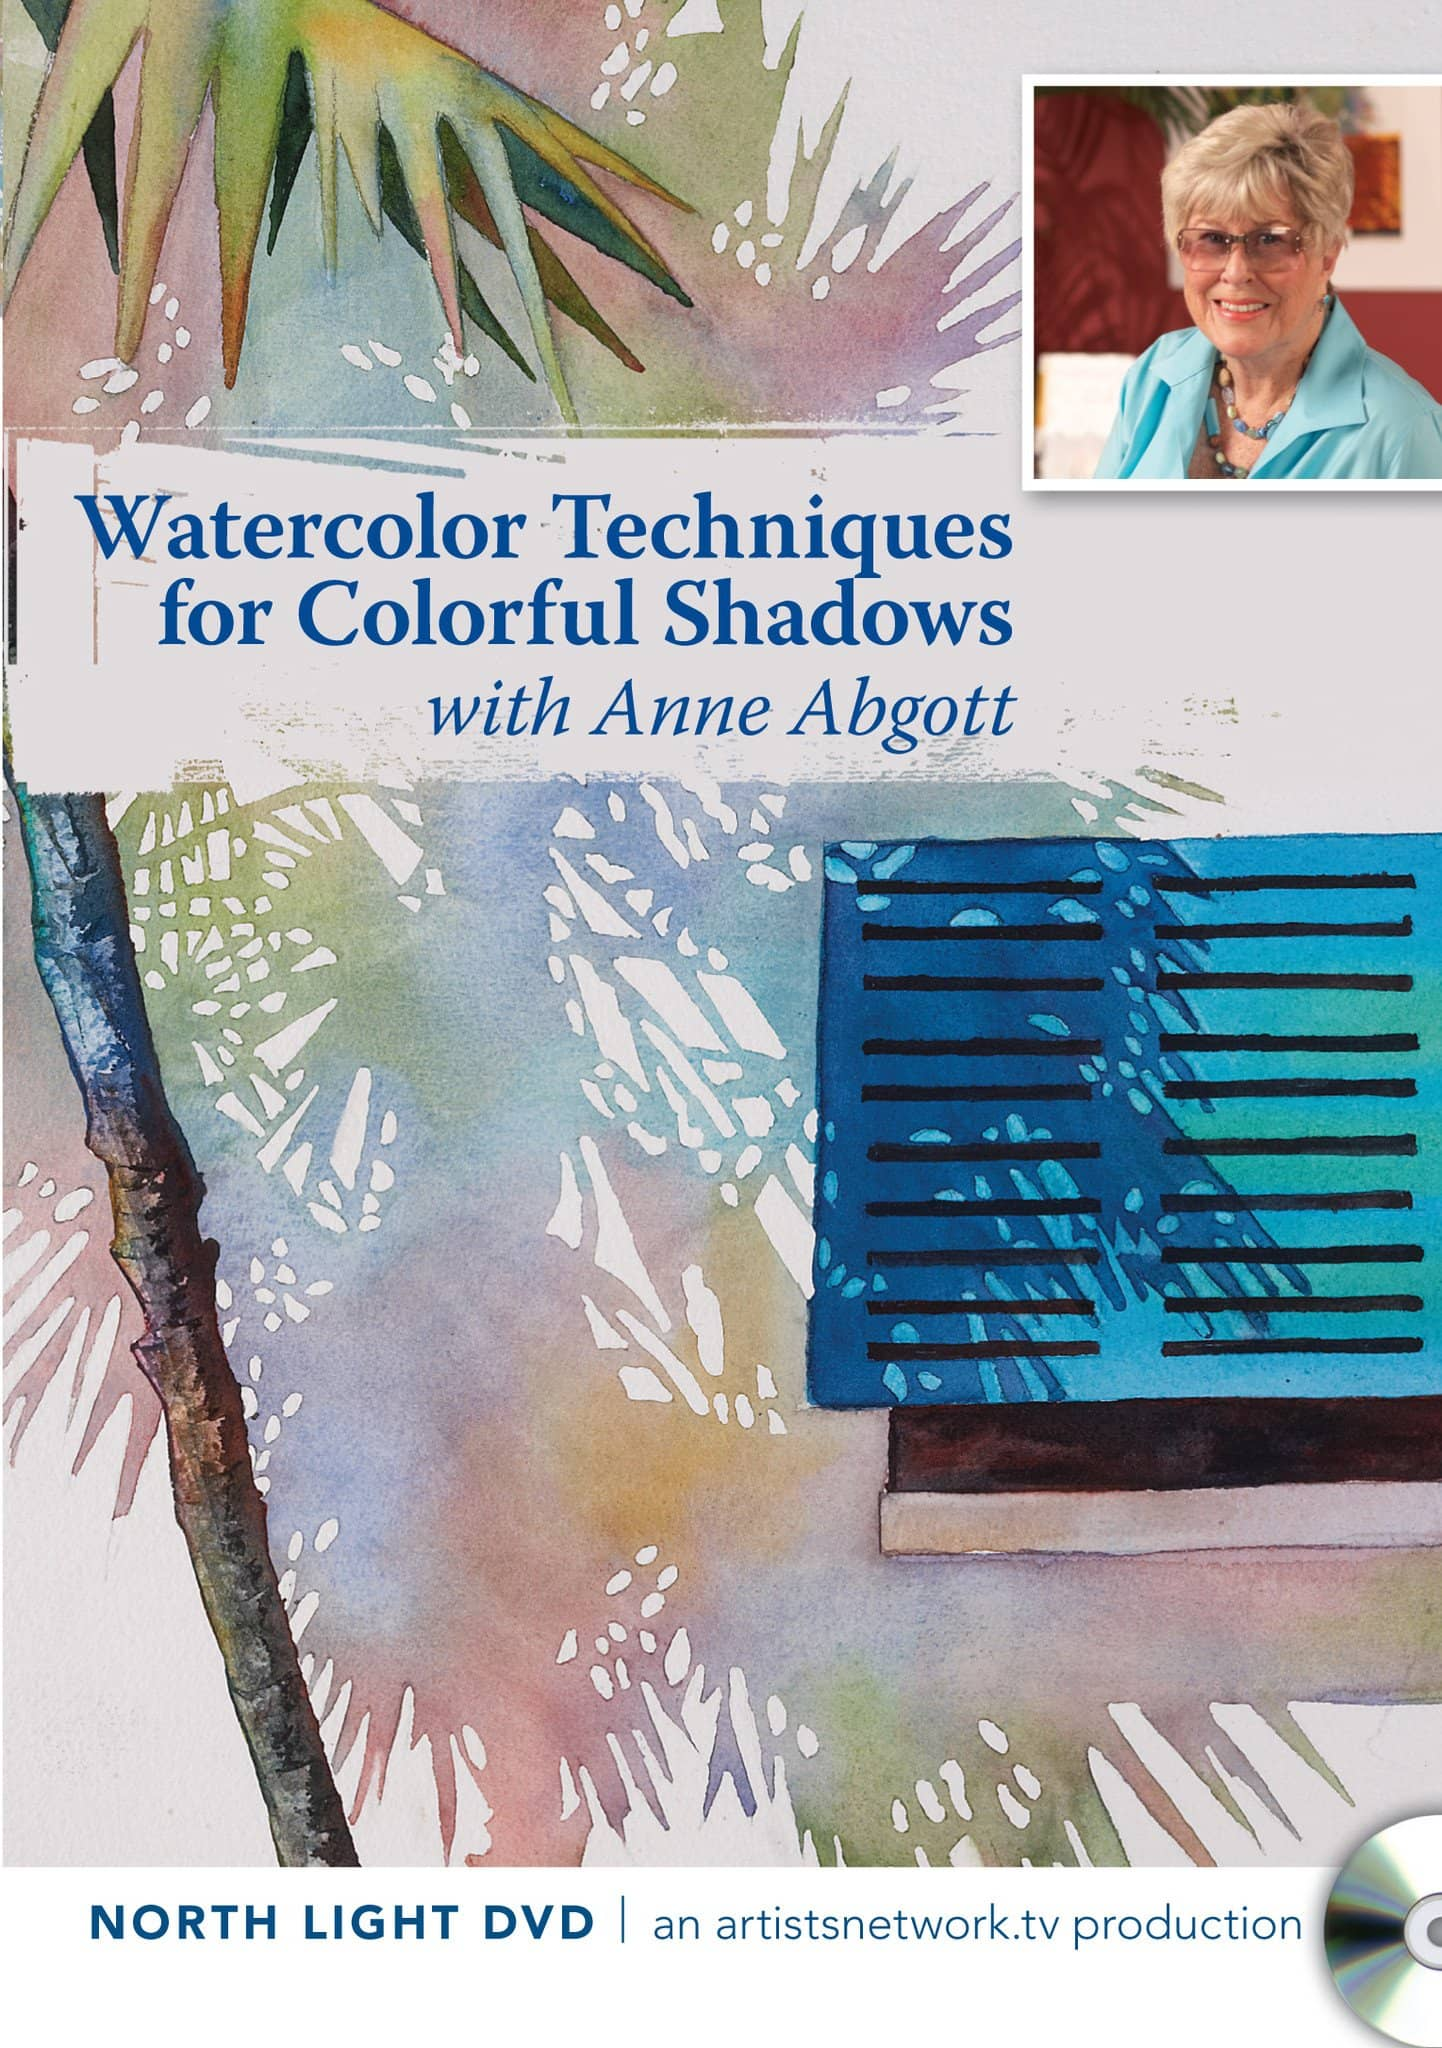 Watercolor Techniques for Colorful Shadows with Anne Abgott Art Instruction Video-DVD from Creative Catalyst